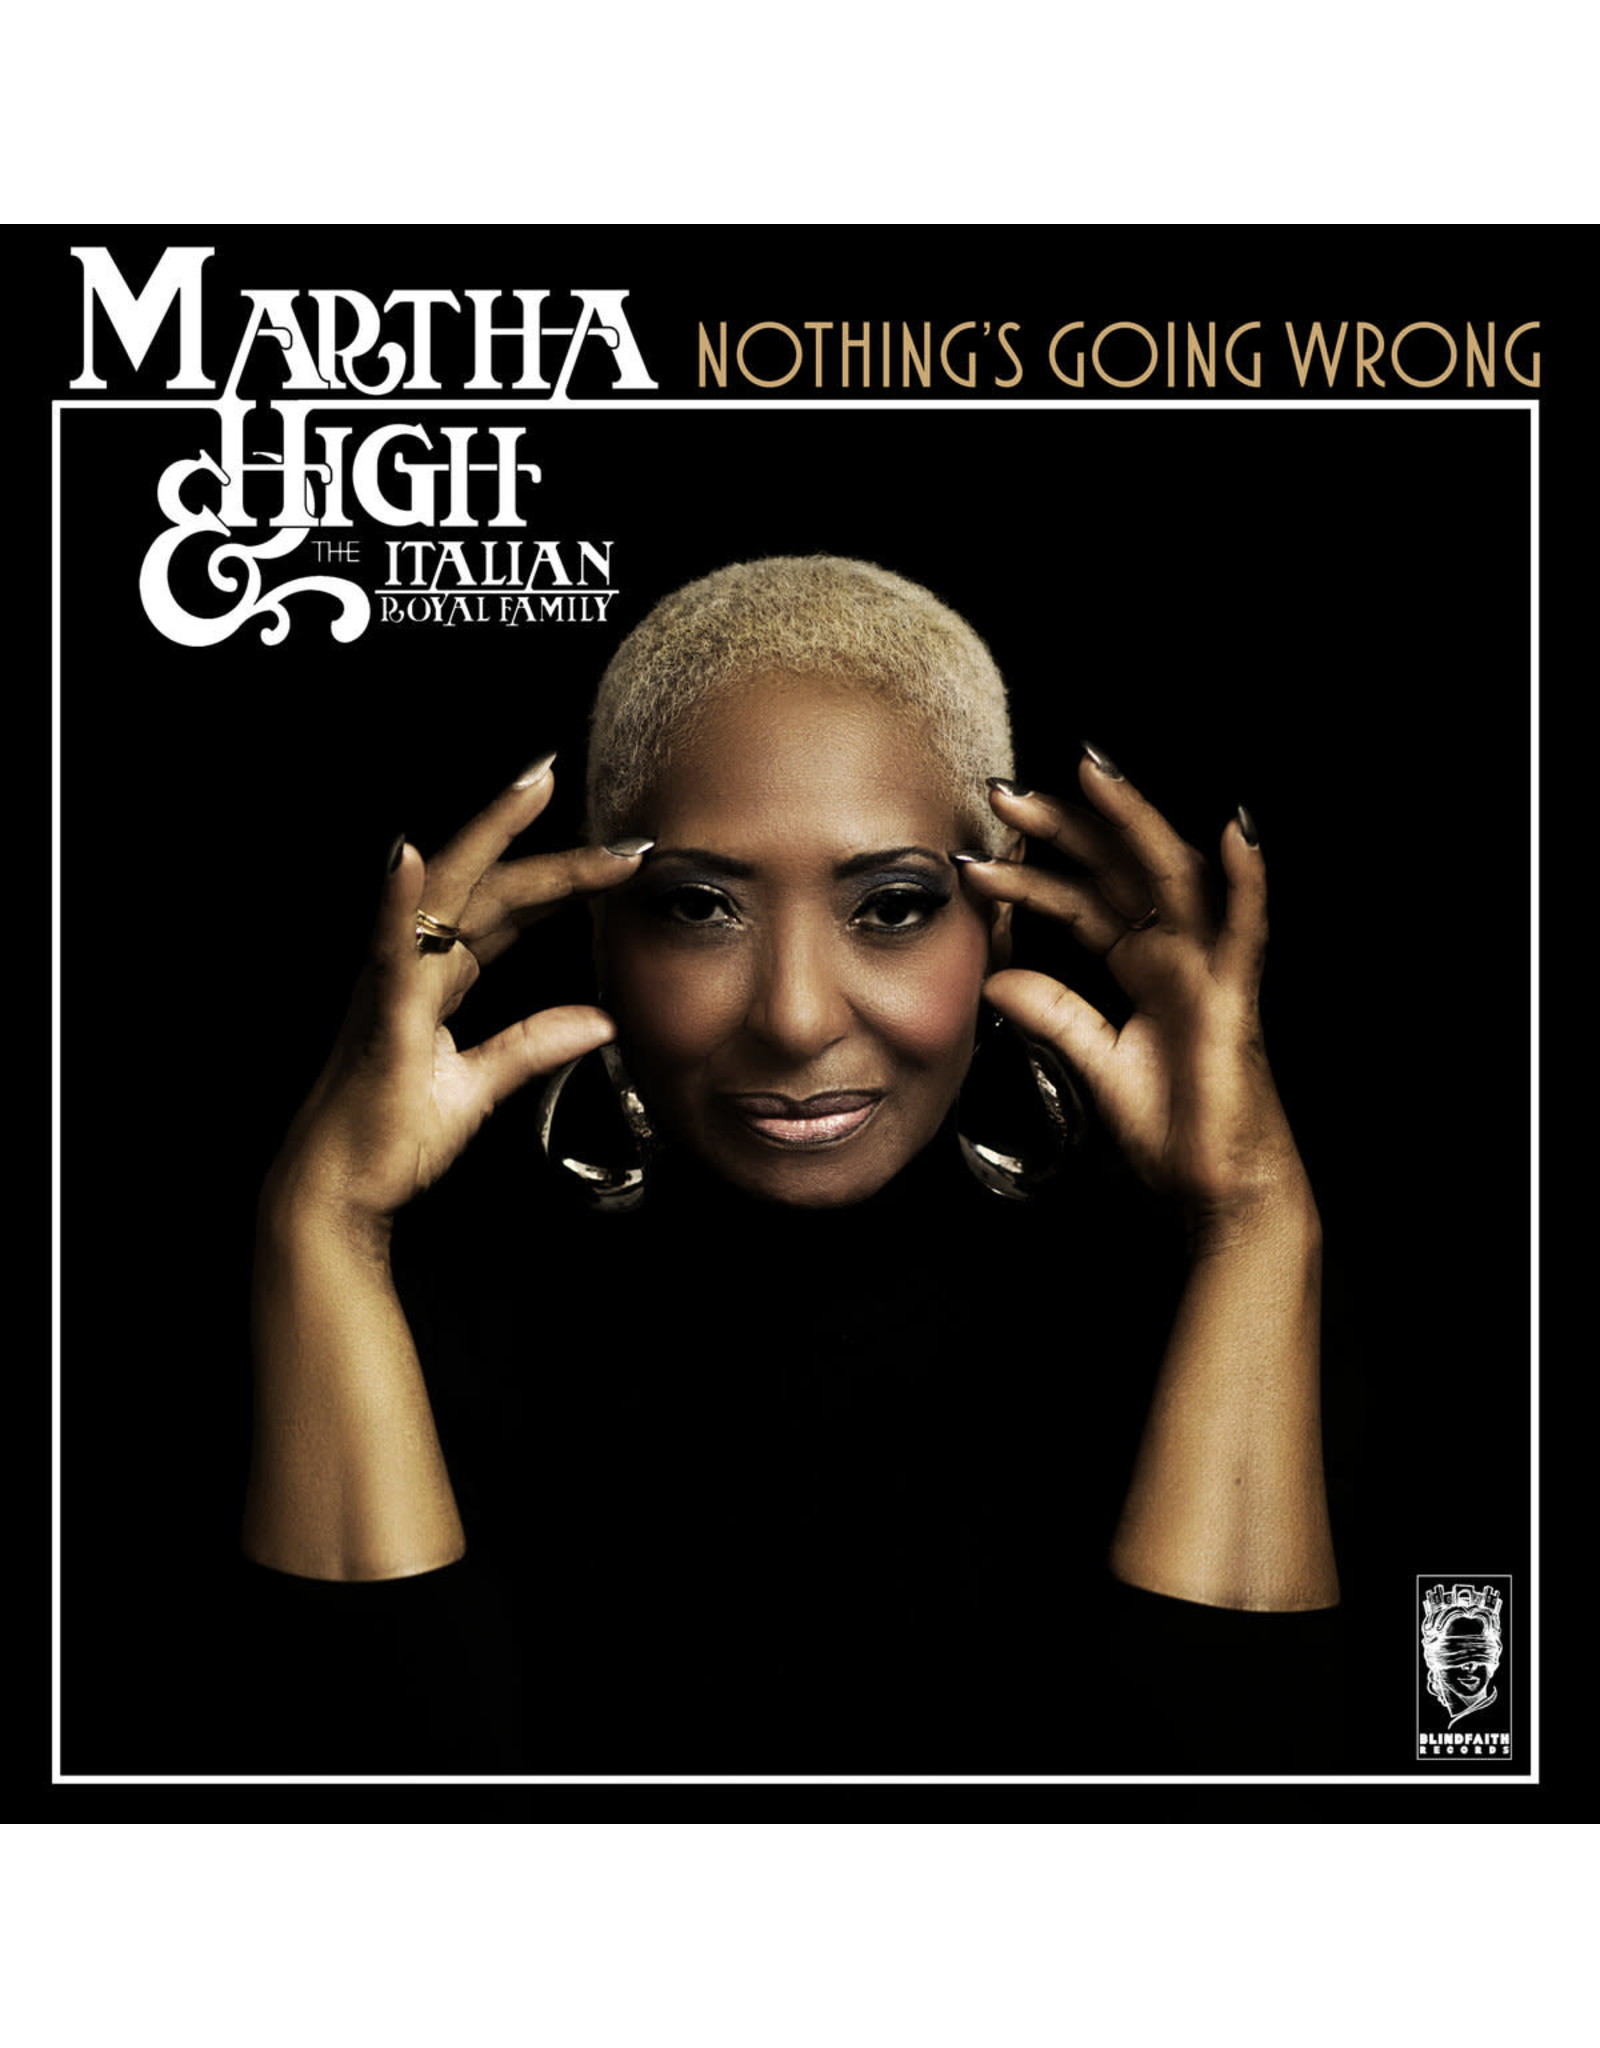 High, Martha - Nothing's Going Wrong LP